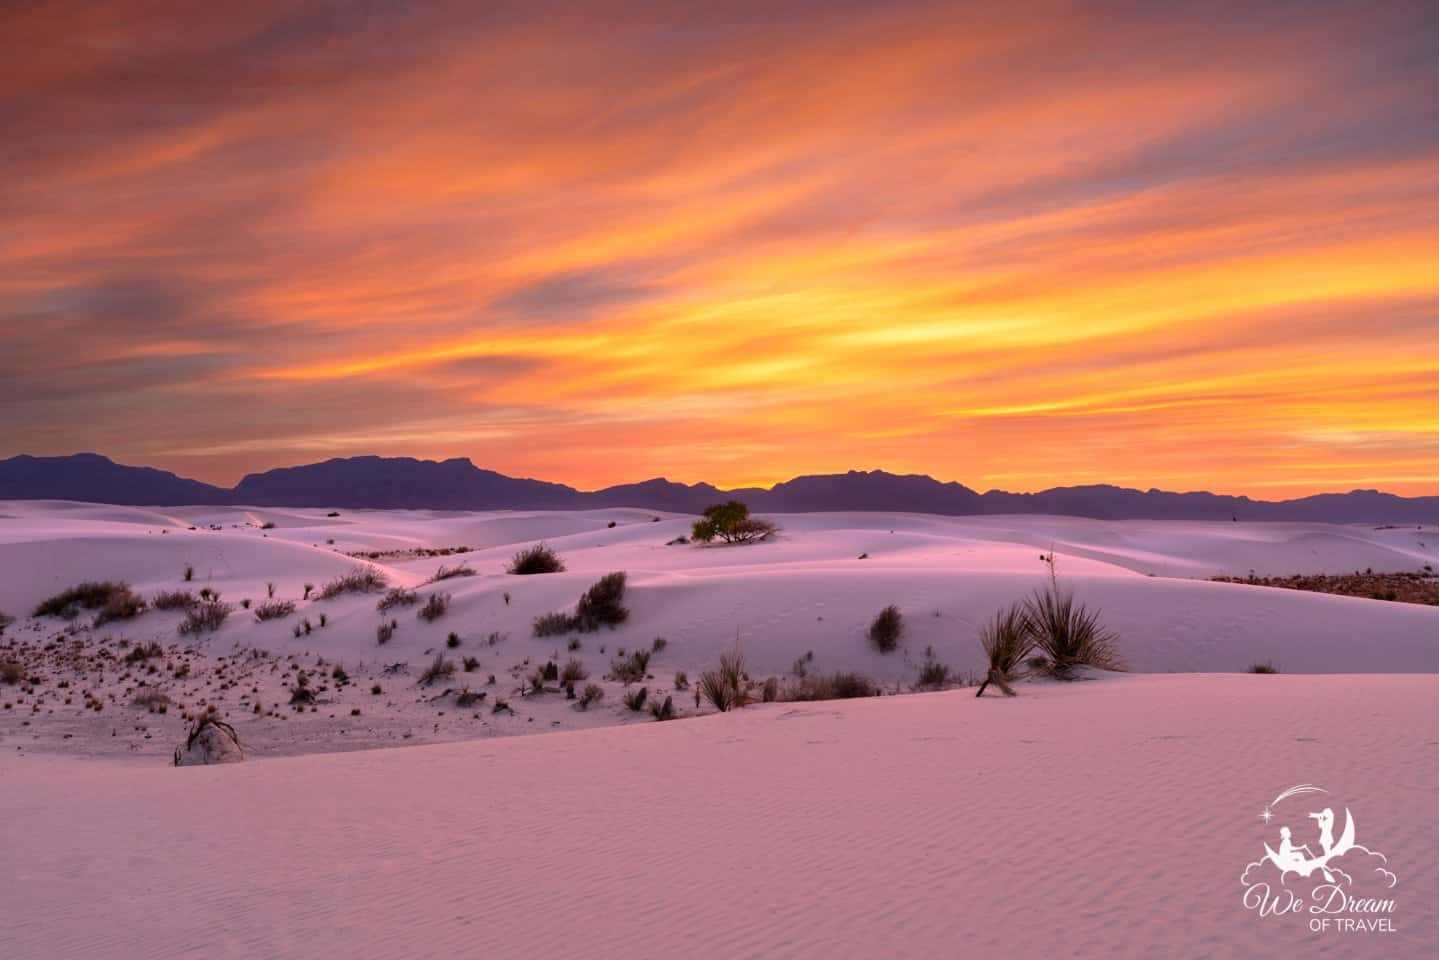 A sky fire sunset reflects off the sand dunes, turning the entire scene pink and orange at White Sands National Park NM.